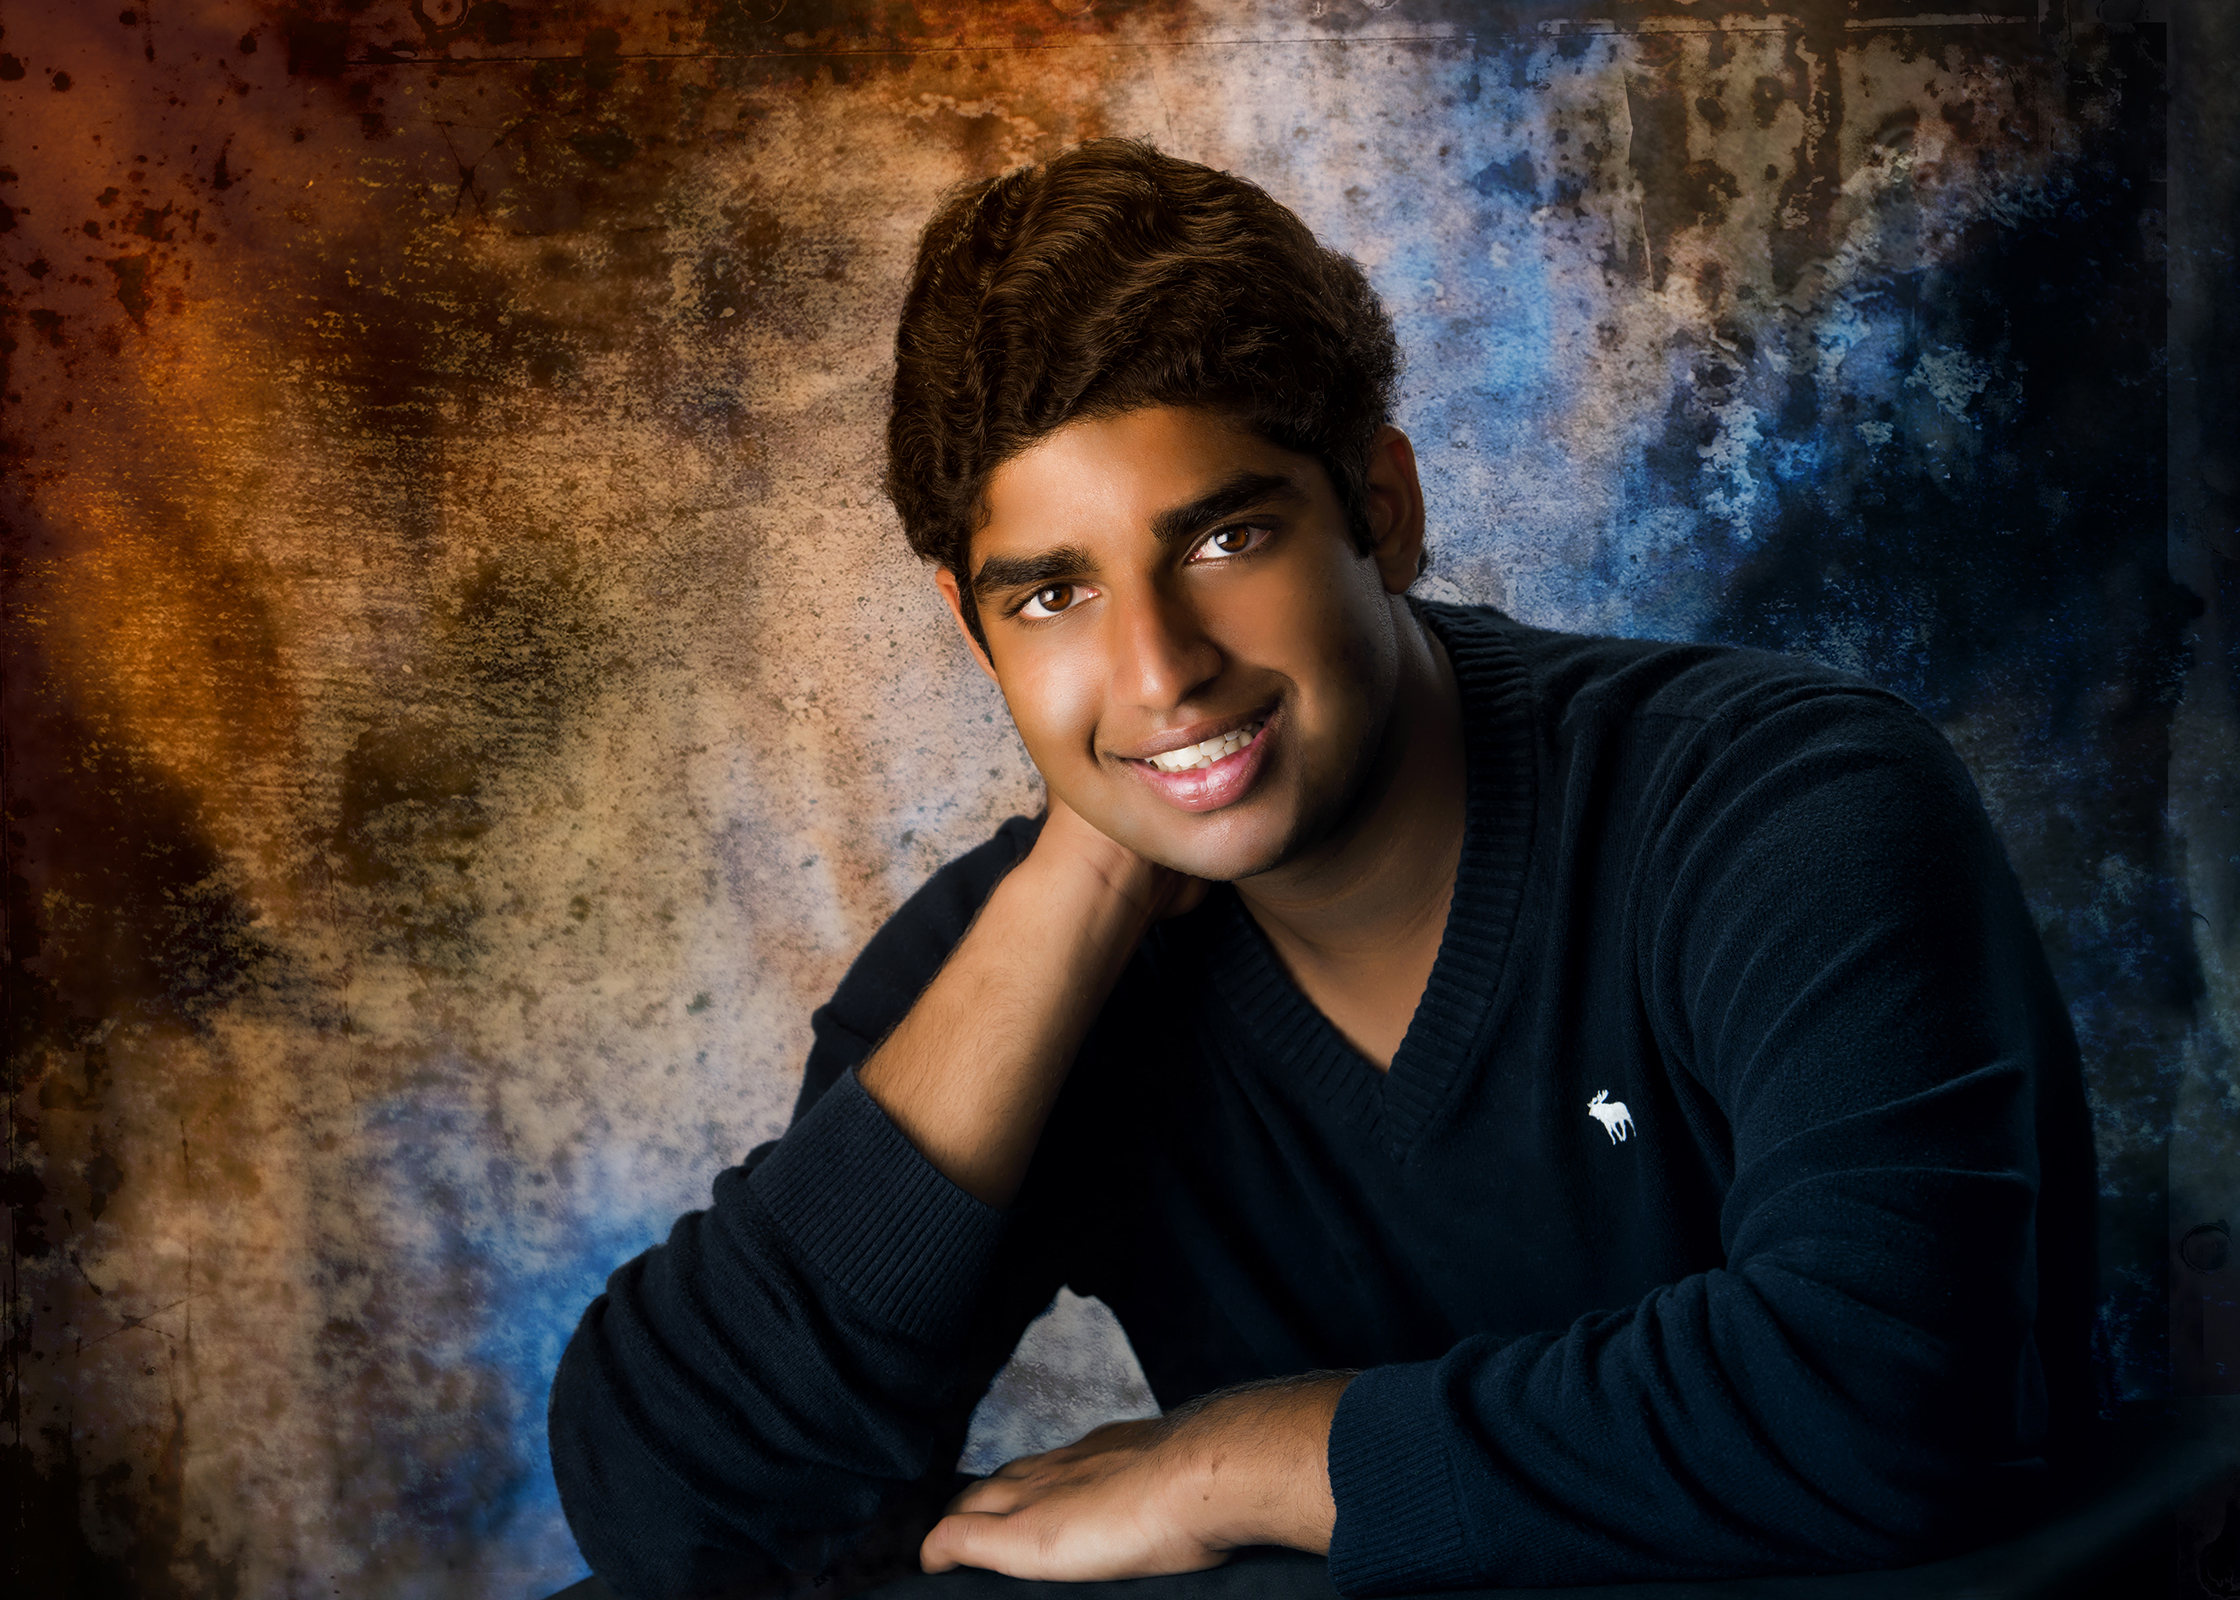 Senior-Studio-Kamaraju151